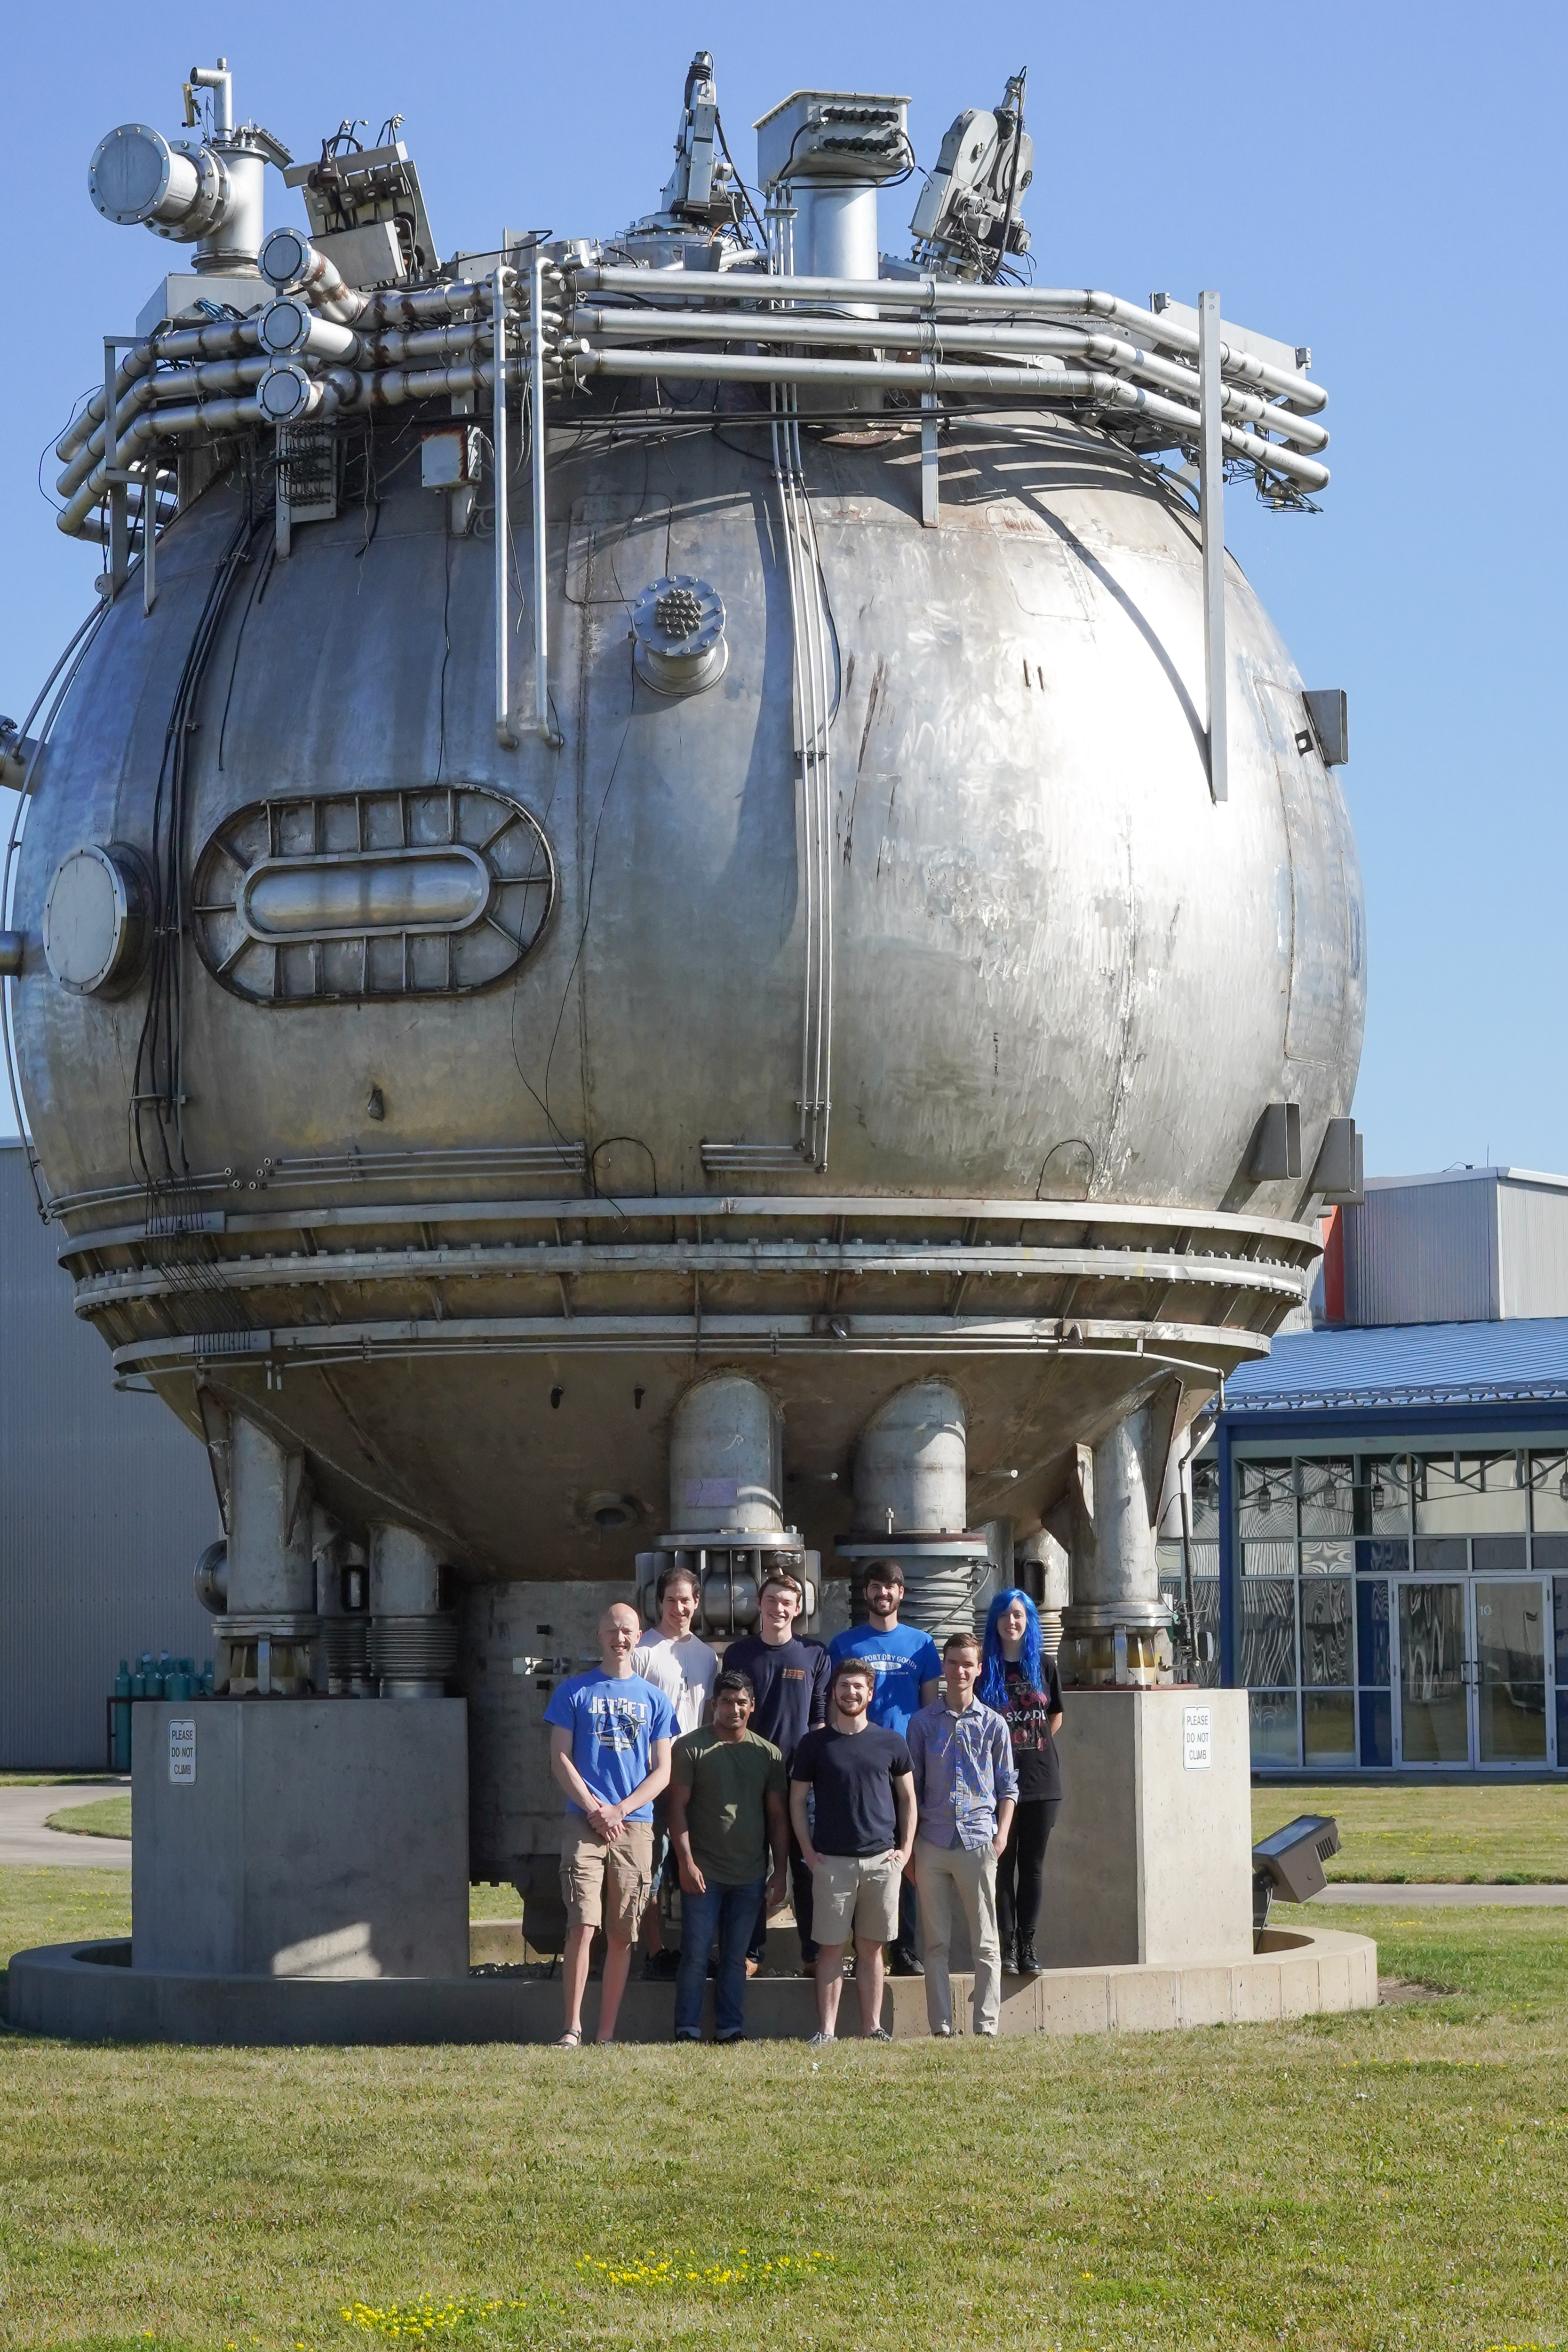 (3/4) Who doesn't want their picture with the Bubble Chamber? Front row, from left: Kyle Wahlberg, Sravan Munagavalasa, Scott Israel, Peter Camporeale. Back row, from left: Luke Chaplinsky, Sam Atac, Michael Campanella, Rosemary Halenza. people, summer, Bubble Chamber Photo: Leticia Shaddix